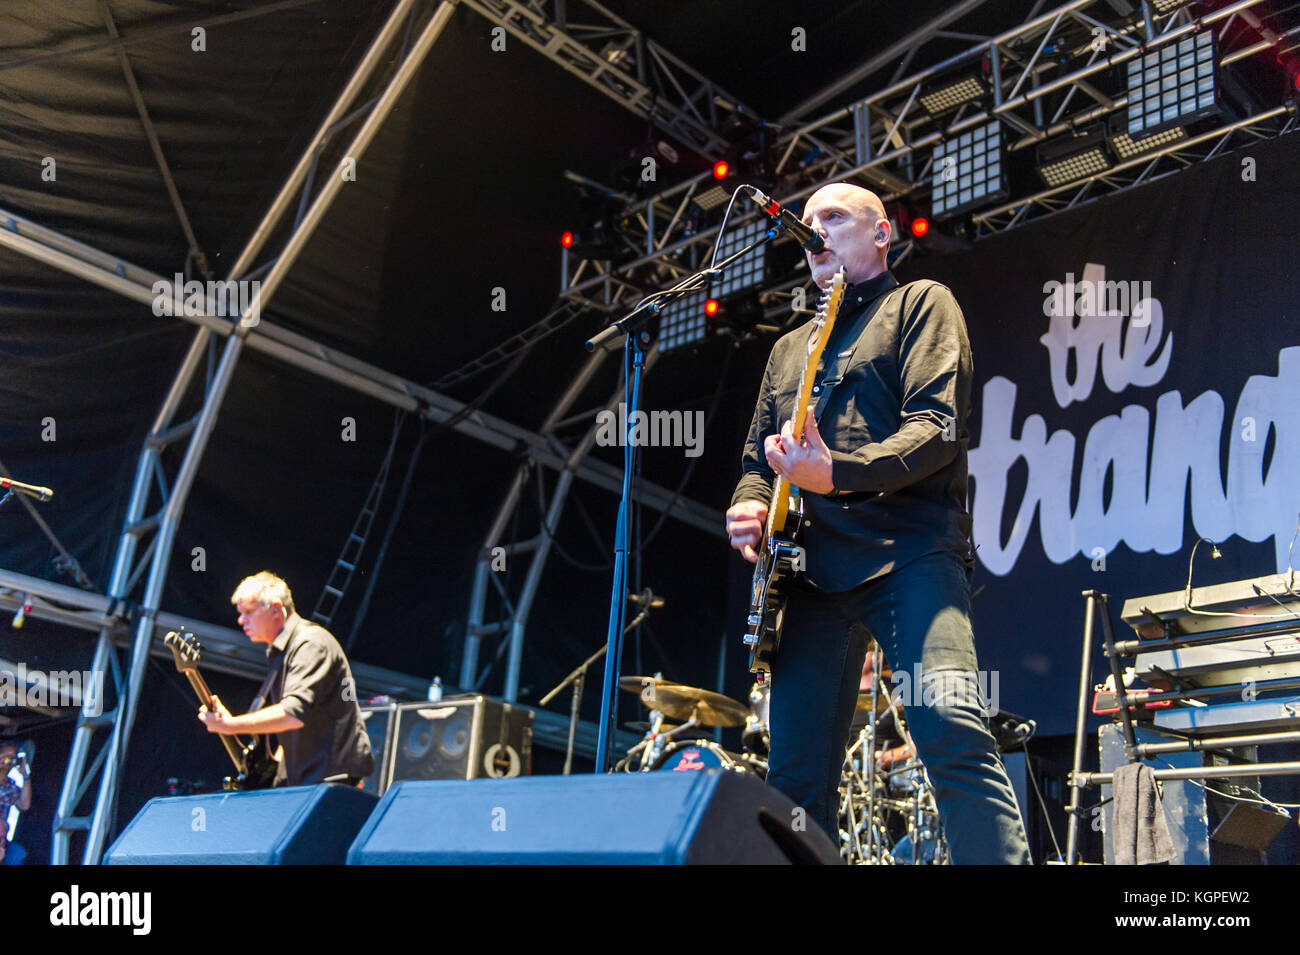 The Stranglers on stage at the Godiva Festival, Coventry, UK in July 2017. - Stock Image